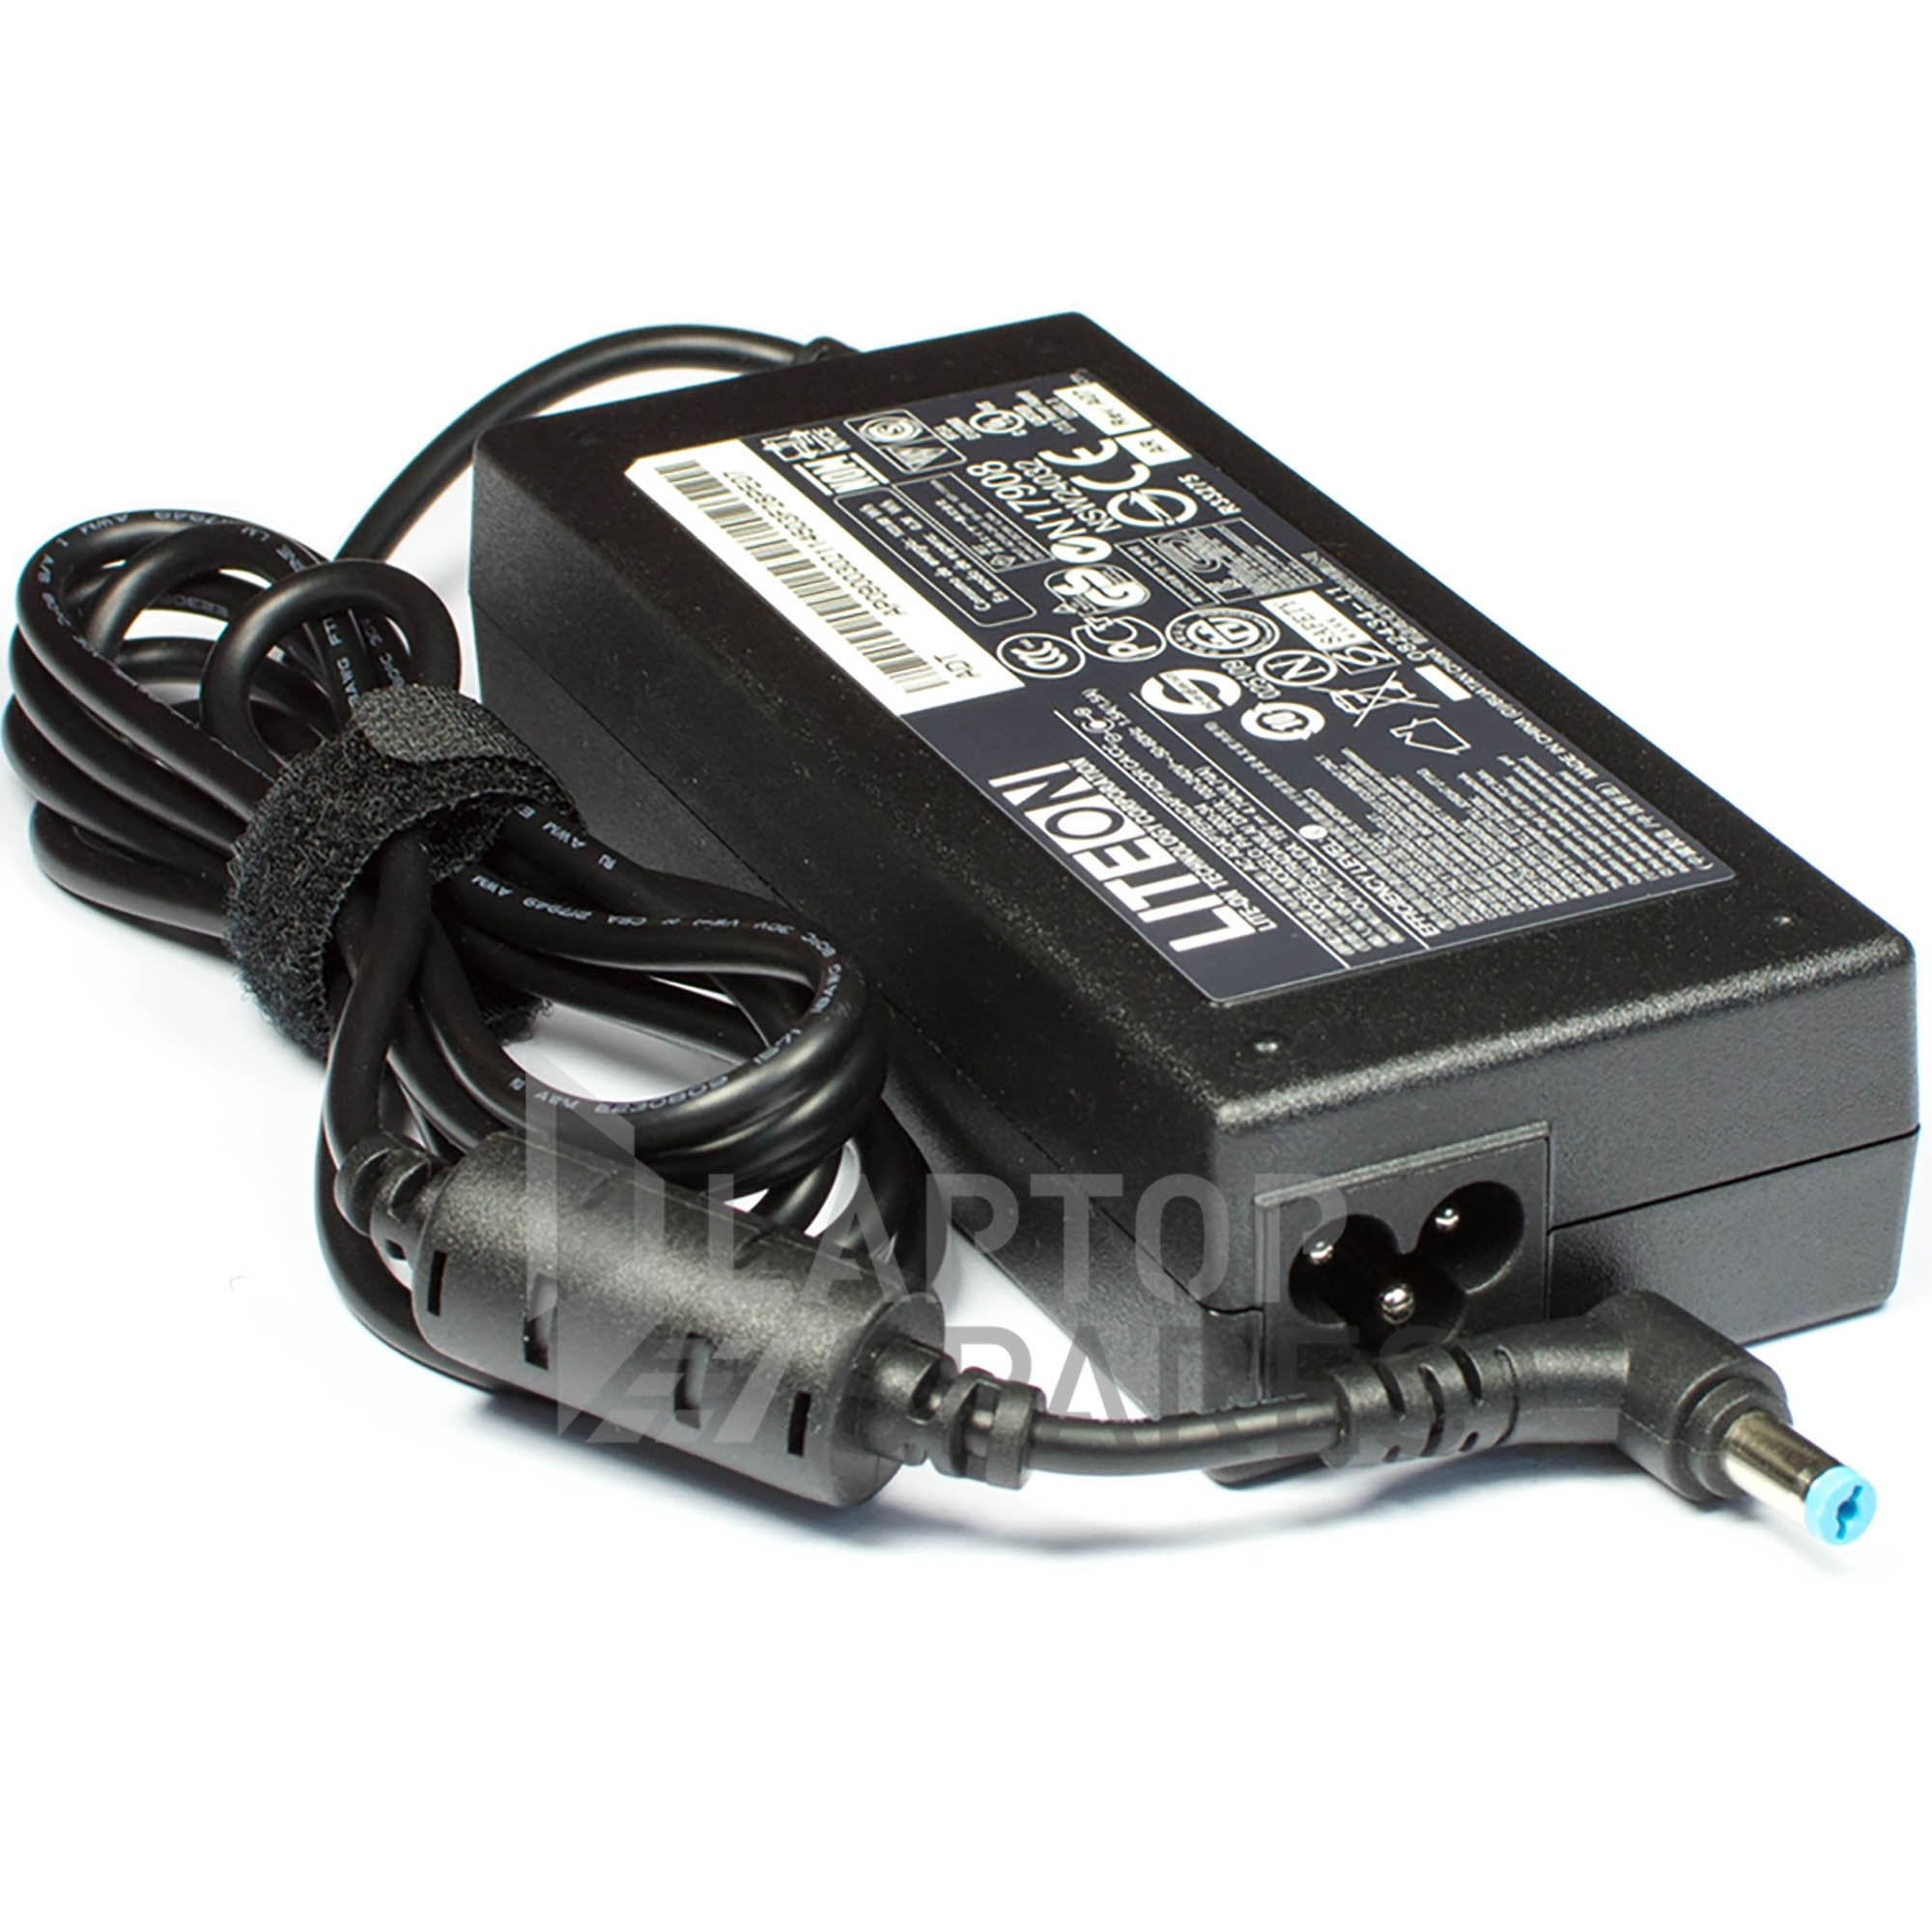 Acer Aspire 1400 1410 1500 Laptop AC Adapter Charger